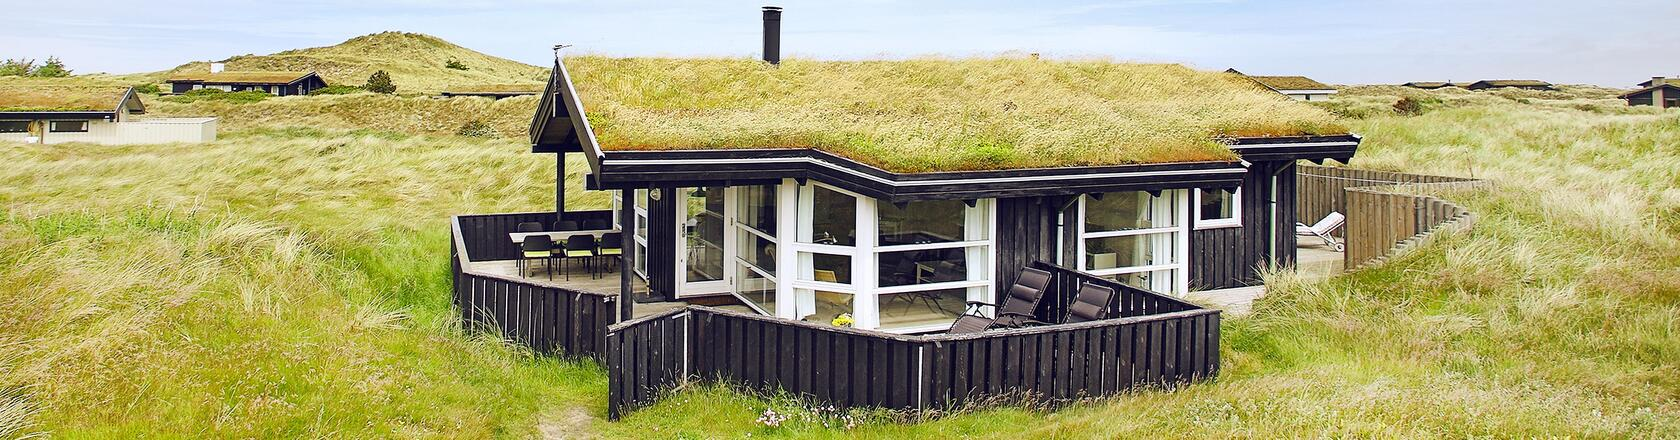 Jammer Bay in Denmark — Rent a holiday home with DanCenter